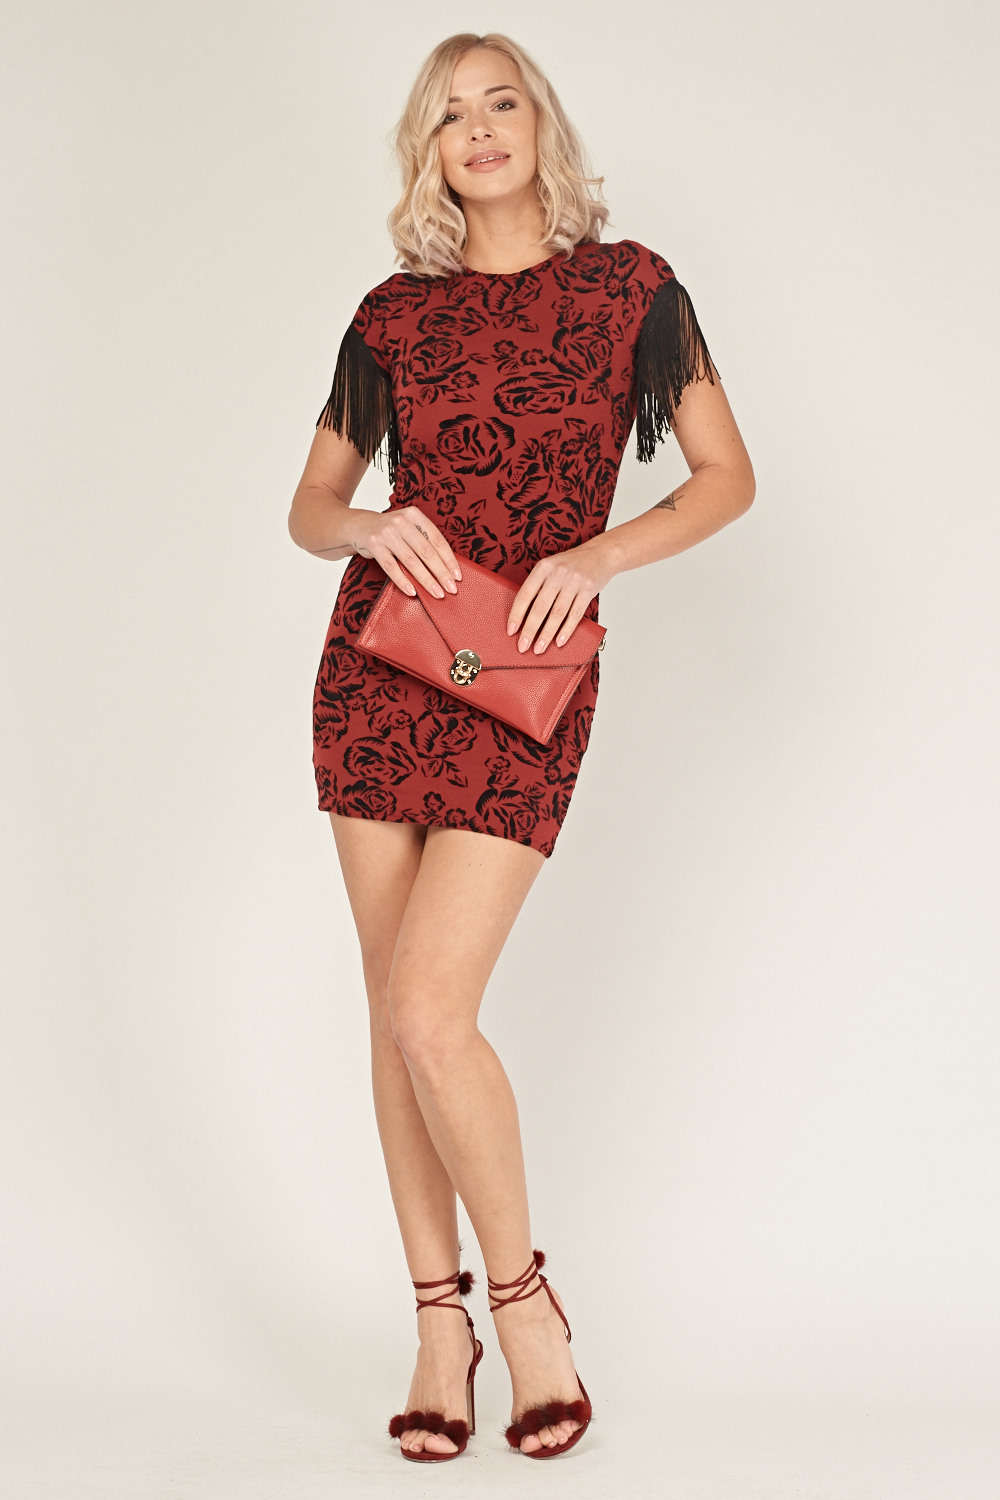 Black bodycon dress with red roses